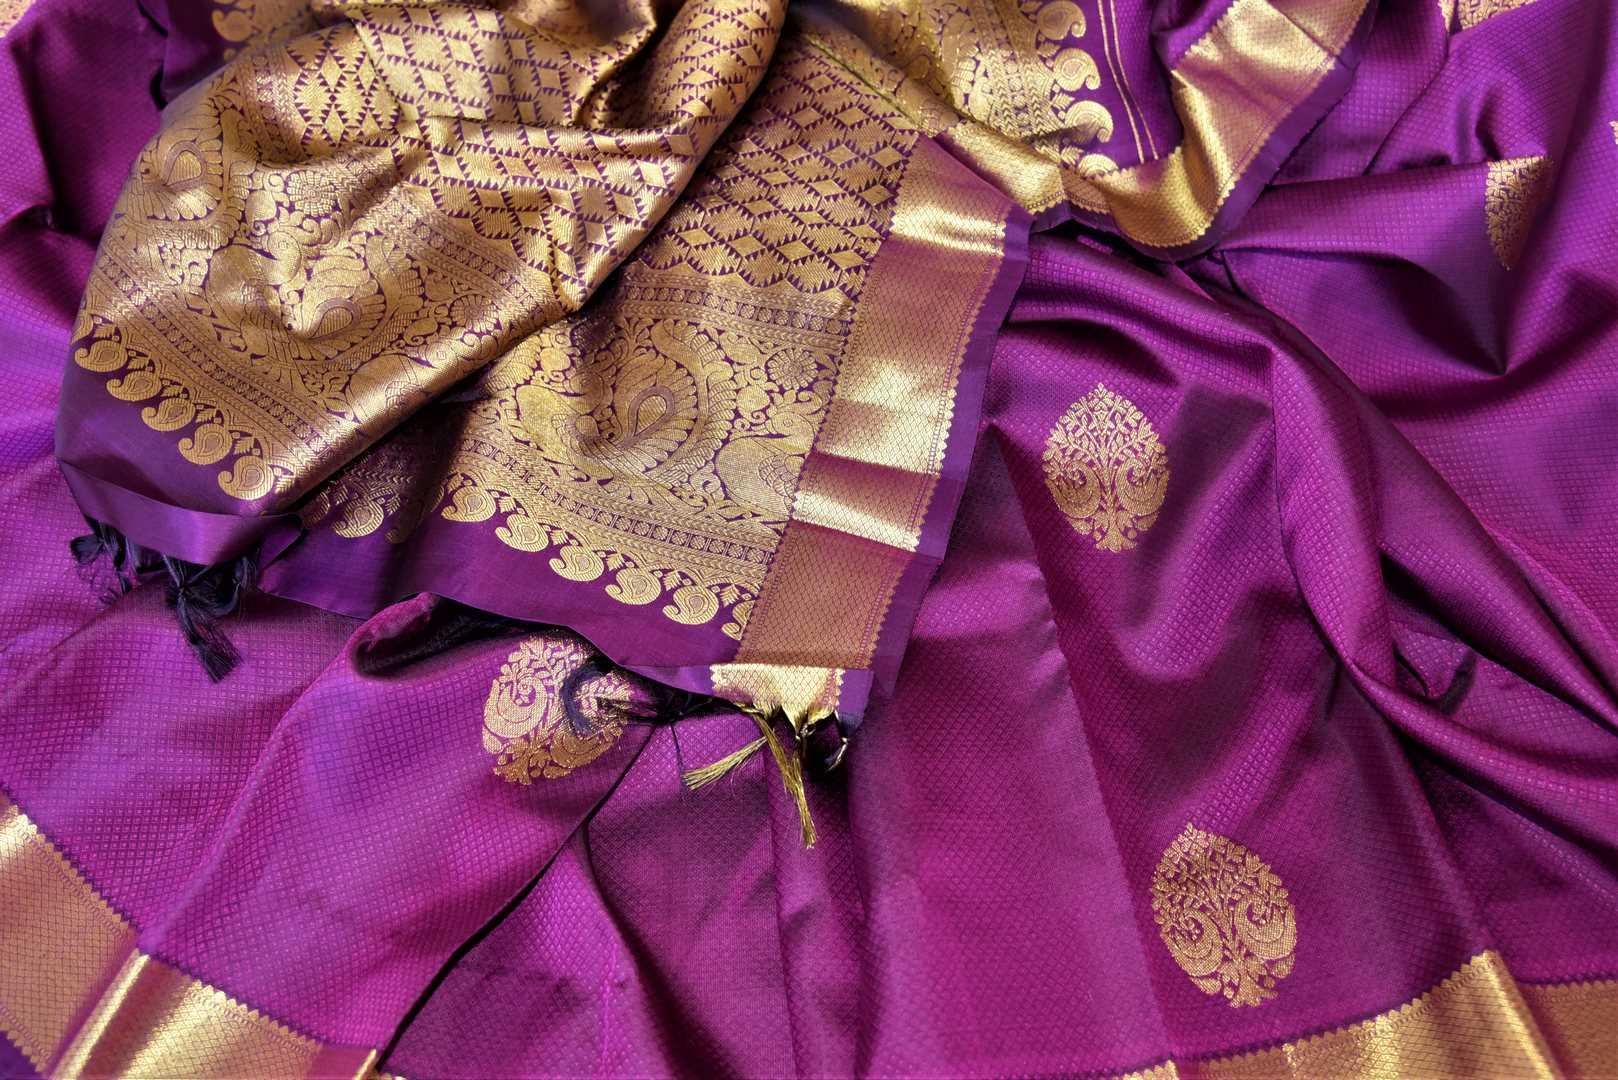 Buy attractive purple Kanjivaram sari online in USA with golden zari border and zari buta. Add spark to your festive style with beautiful Kanchipuram silk sarees in USA from Pure Elegance Indian fashion store.-details